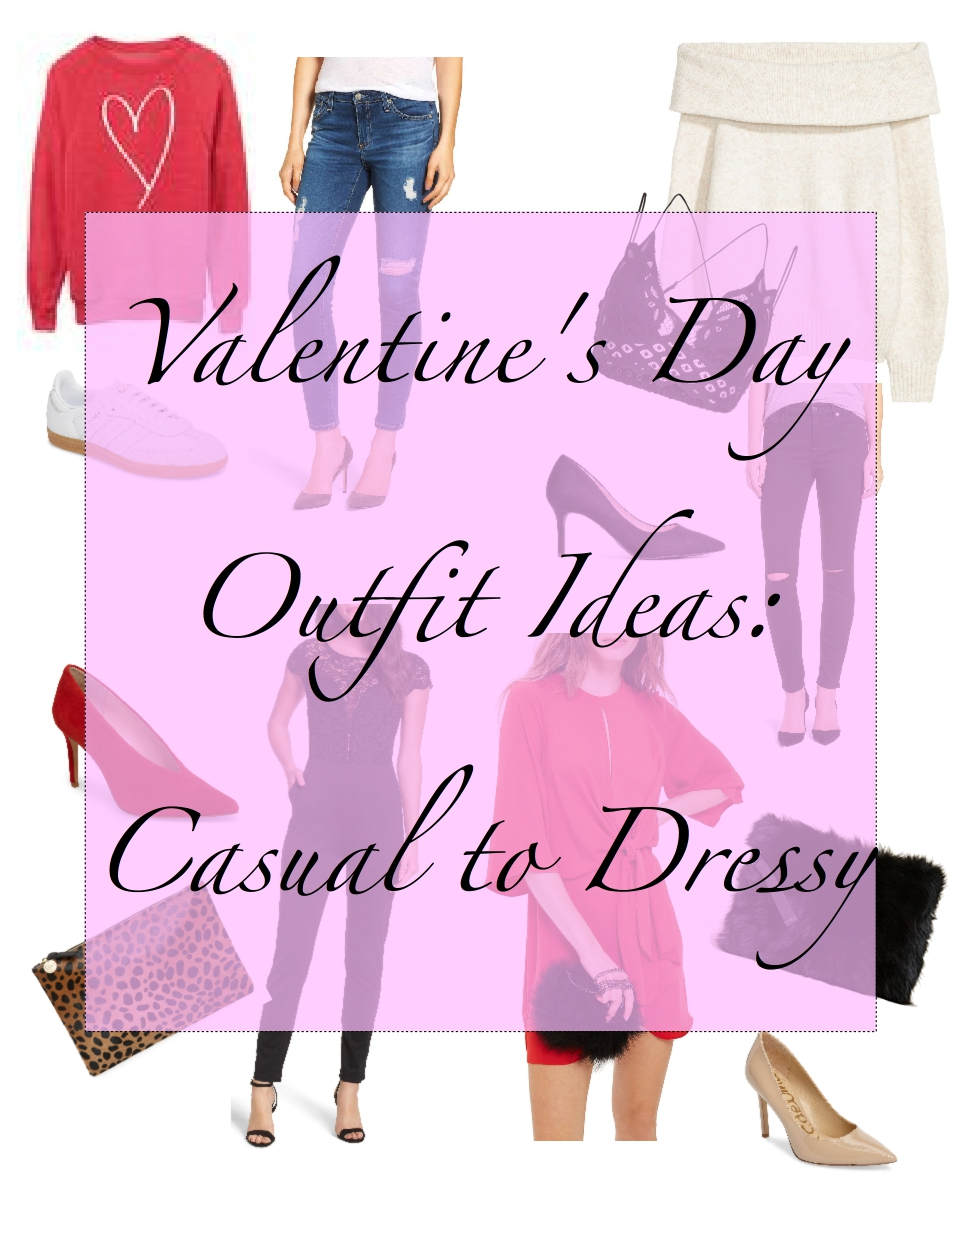 valentine's-day-outfit-ideas-from-casual-to-dressy